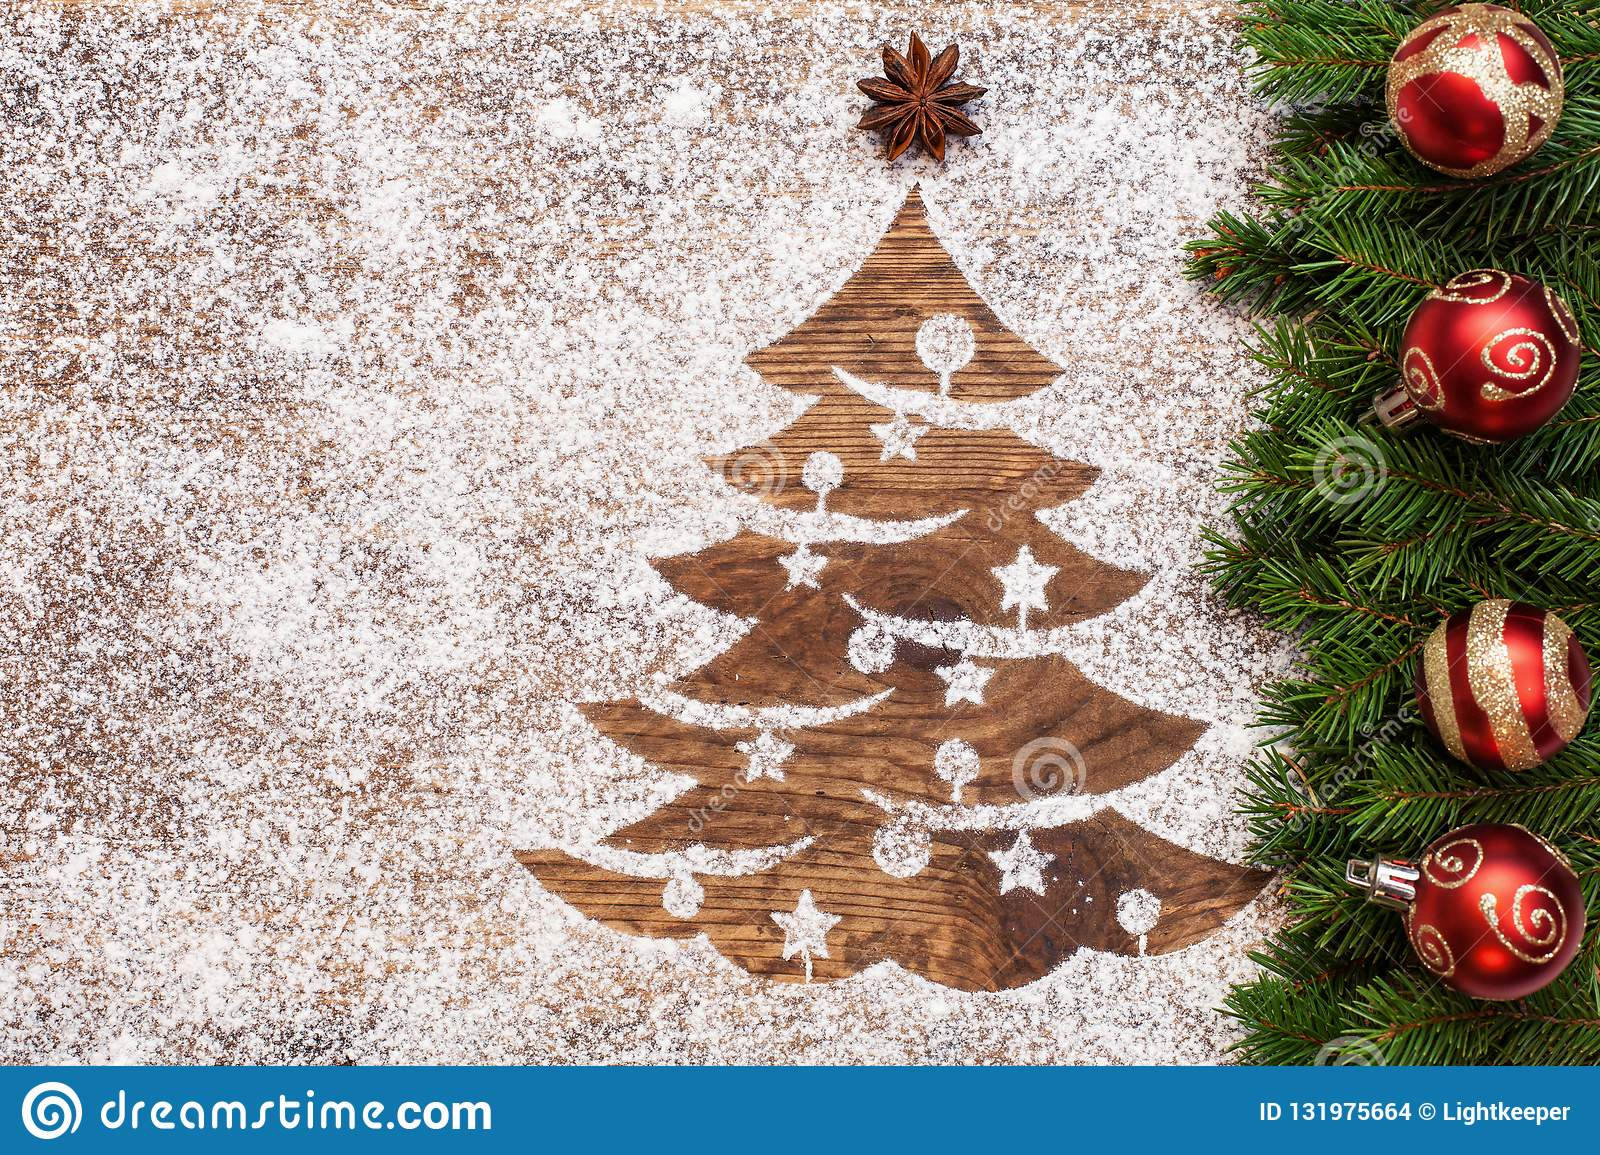 Christmas greeting with xmas tree drawing in sand